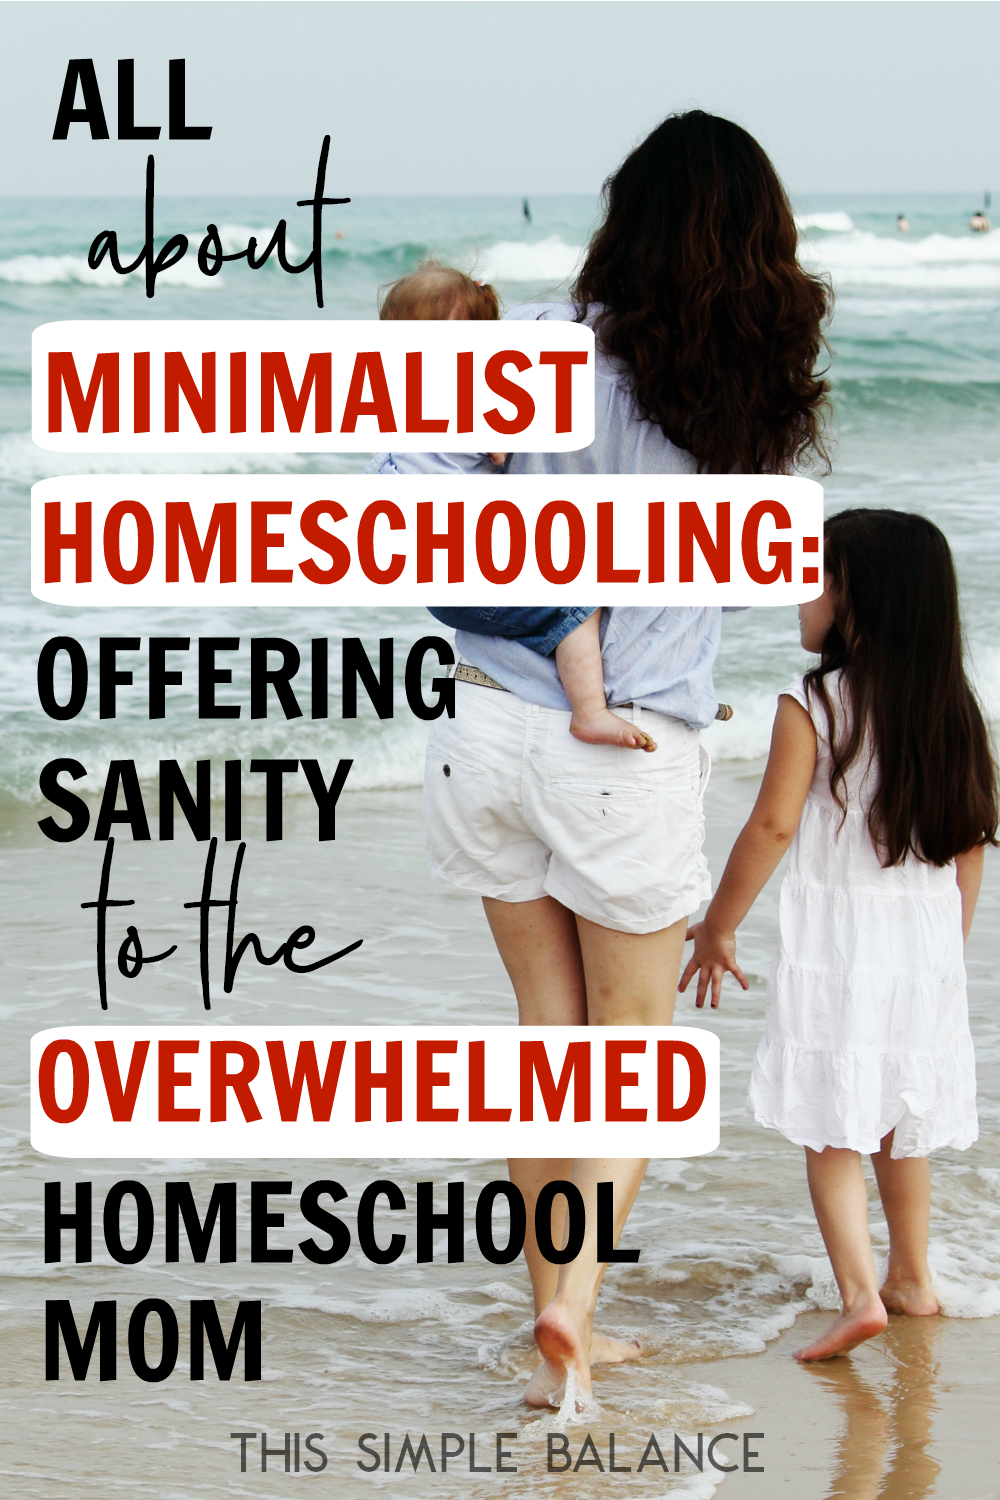 Minimalist homeschooling can seriously save your sanity homeschool mom. Learn what minimalist homeschooling is, what its not, and how to start eliminating the homeschool overwhelm!